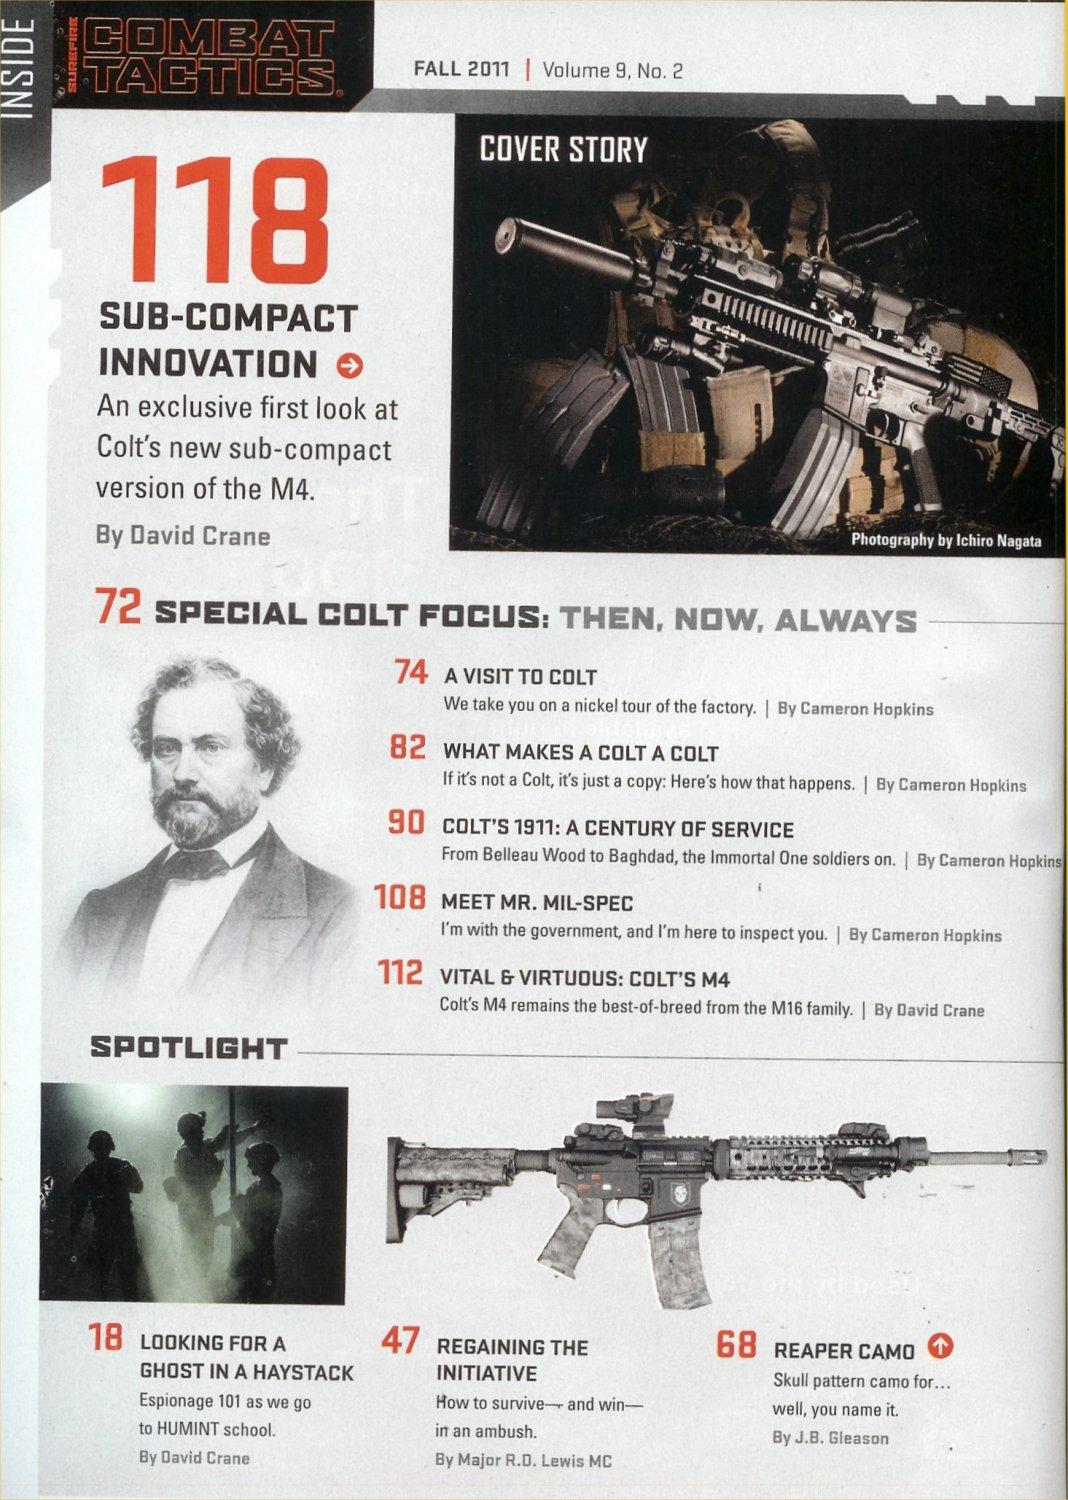 SureFire Combat Tactics Magazine Fall 2011 Issue Inside Page David Crane Articles Listing small DR Heads Up: Latest issue of SureFire Combat Tactics Magazine (Fall 2011 Issue) coming out, so go pick it up!